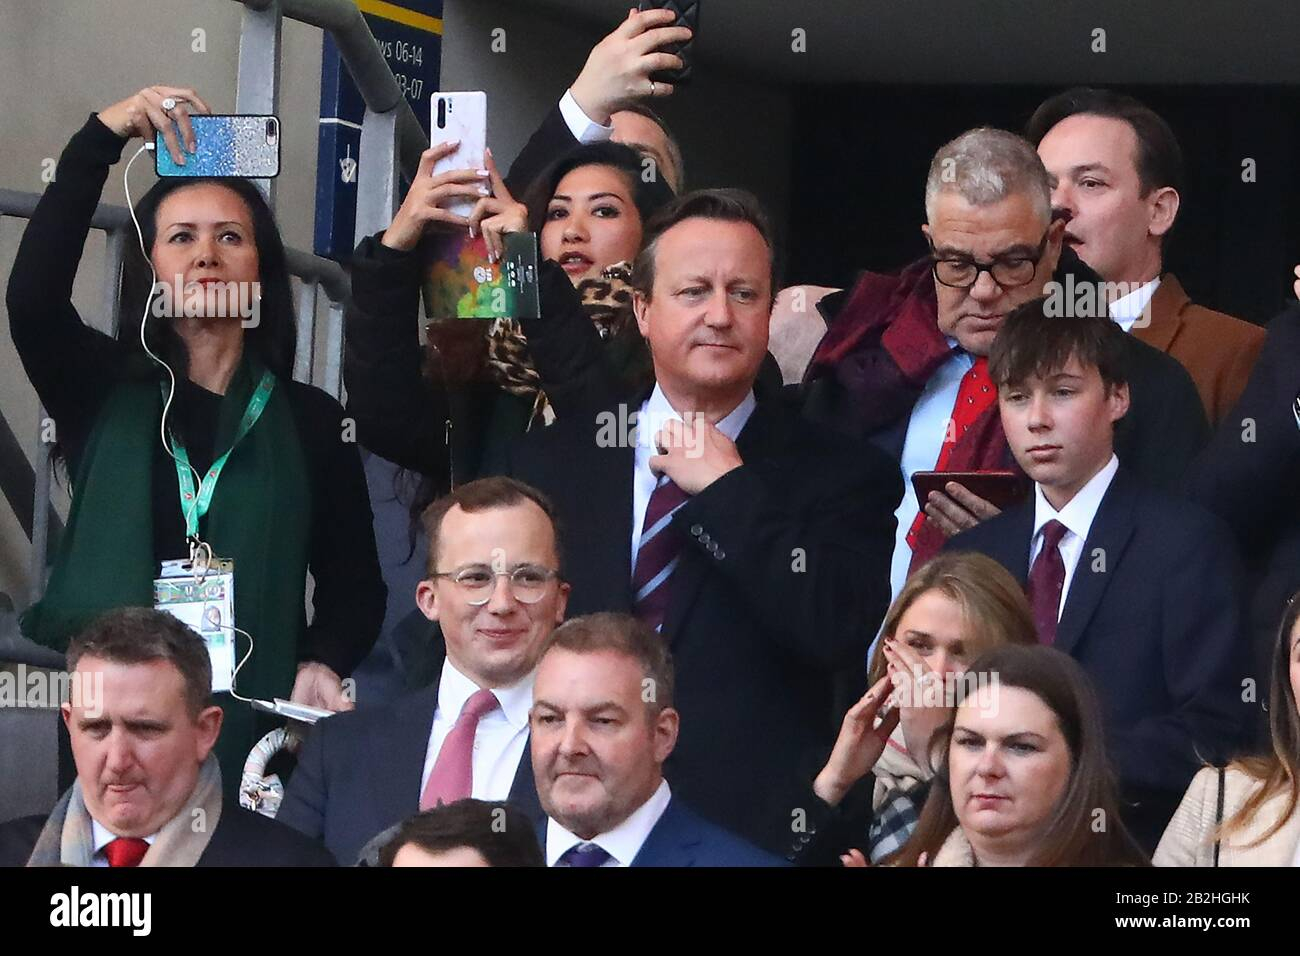 Former Prime Minister of the United Kingdom, David Cameron sings the national anthem ahead of kick off with his son, Elwin (R) - Aston Villa v Manchester City, Carabao Cup Final, Wembley Stadium, London, UK - 1st March 2020  Editorial Use Only - DataCo restrictions apply Stock Photo